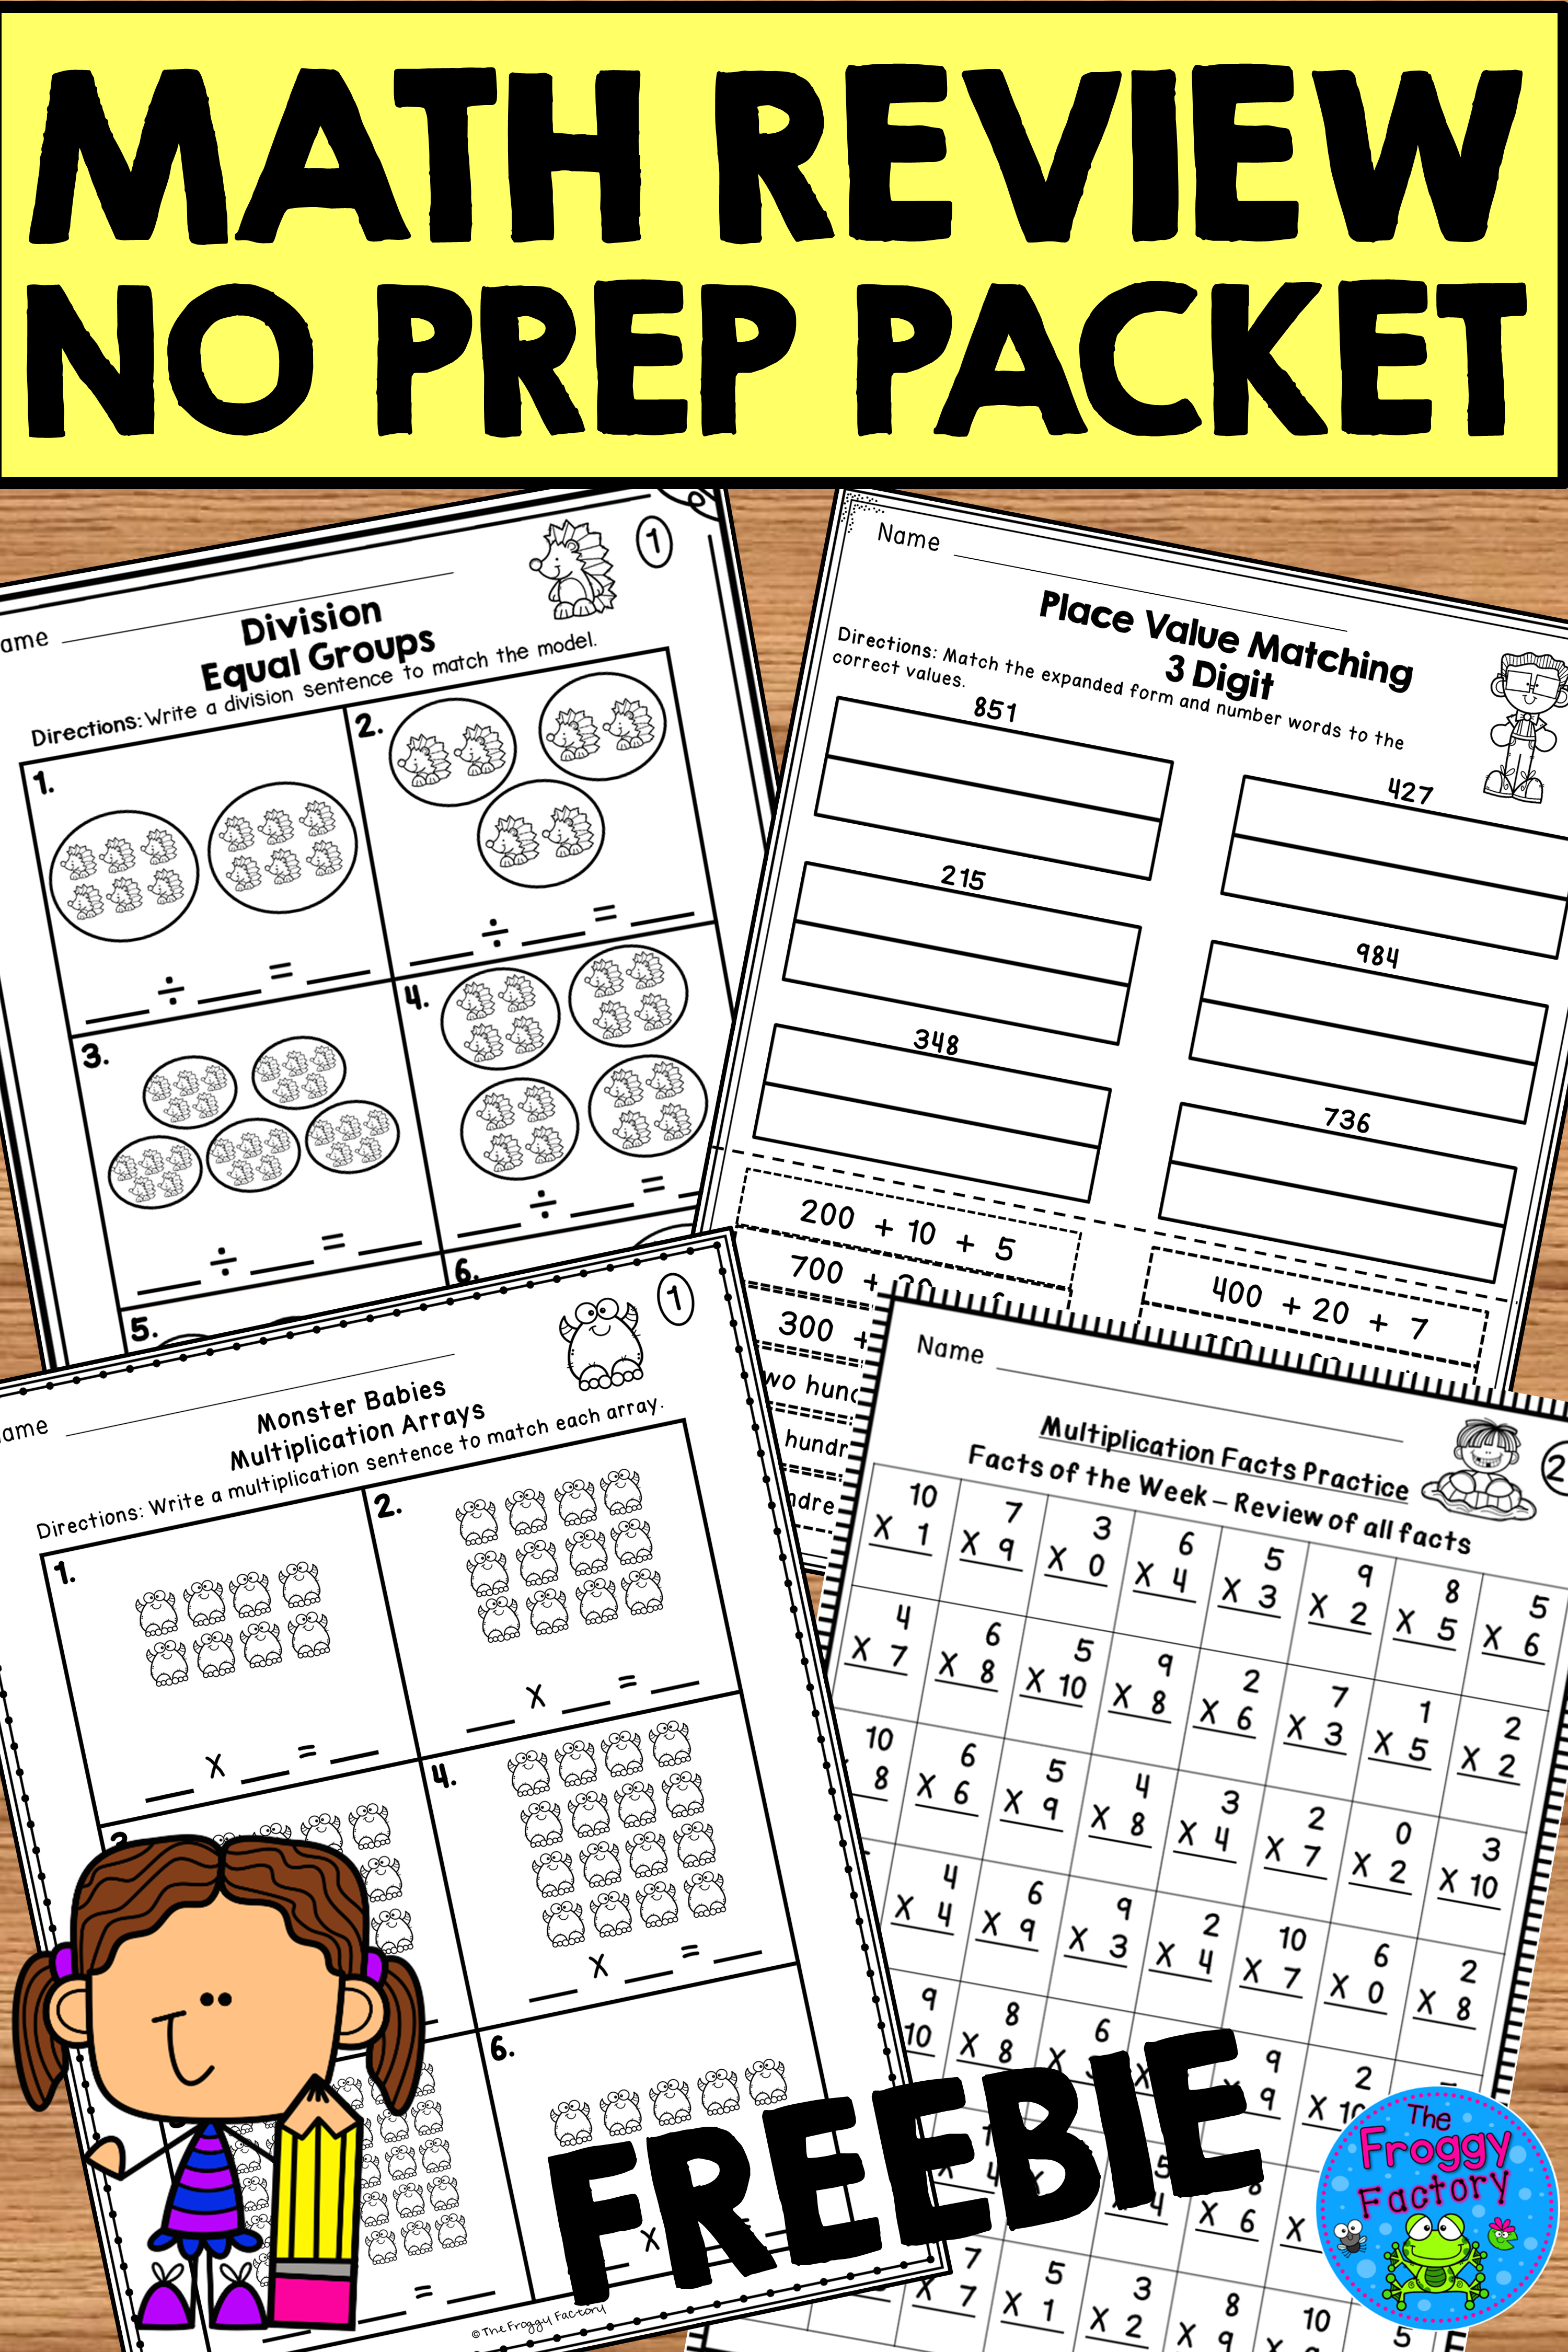 Do Your Students Need More Math Review This Math Review